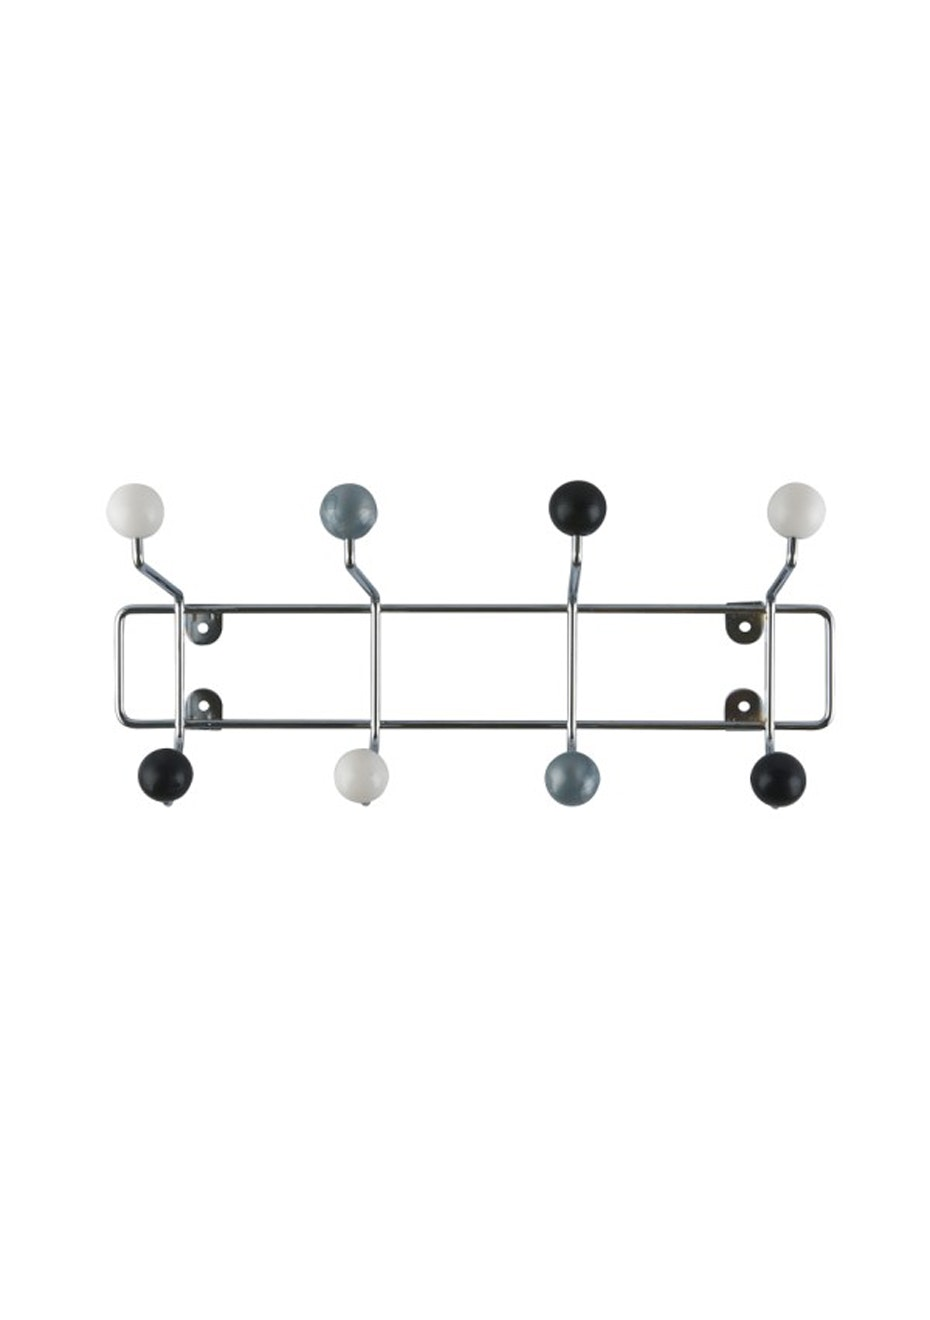 Pt Home - Coat Rack Saturnus - Black/Silver/White